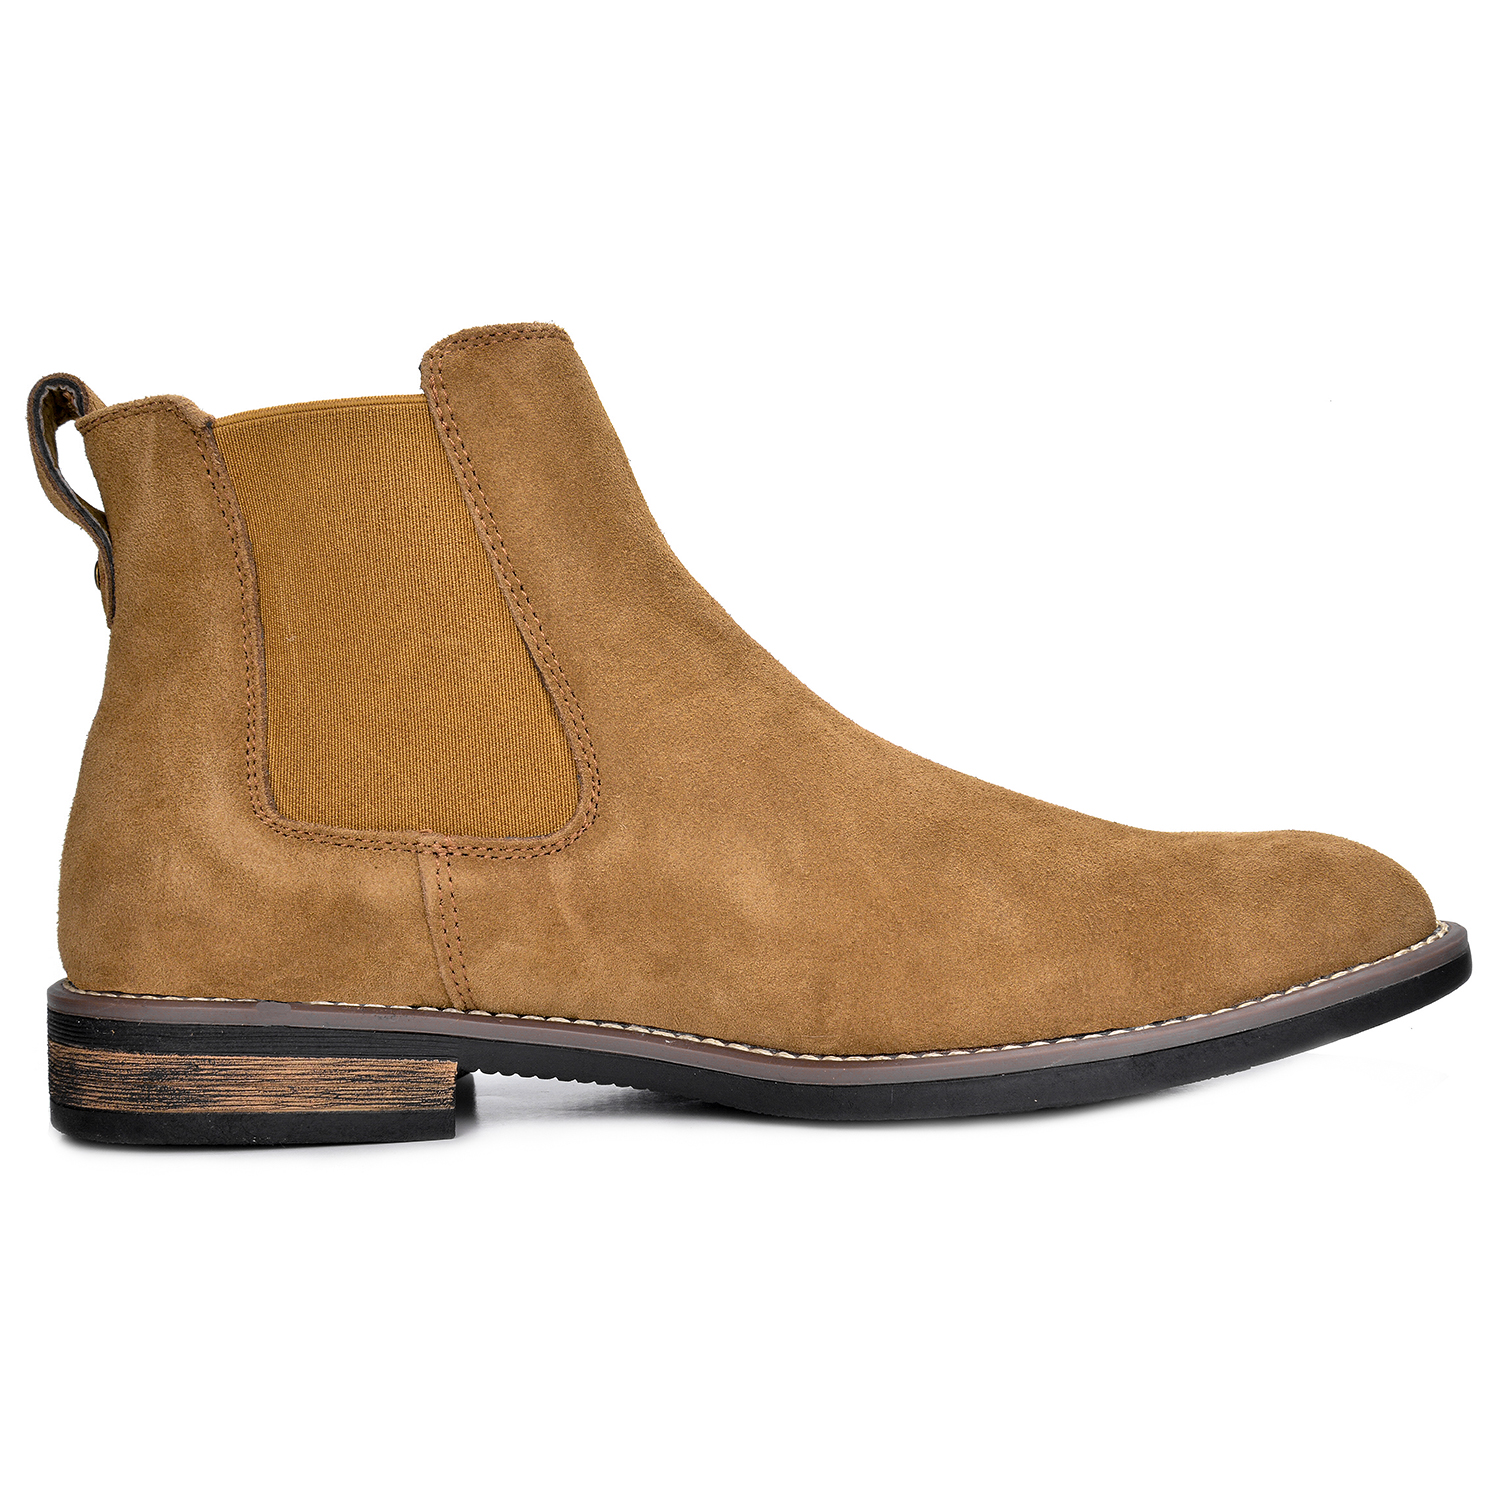 BRUNO-MARC-Men-URBAN-Suede-Leather-Chelsea-Chukka-Dress-Ankle-Boots-Casual-Shoes thumbnail 16